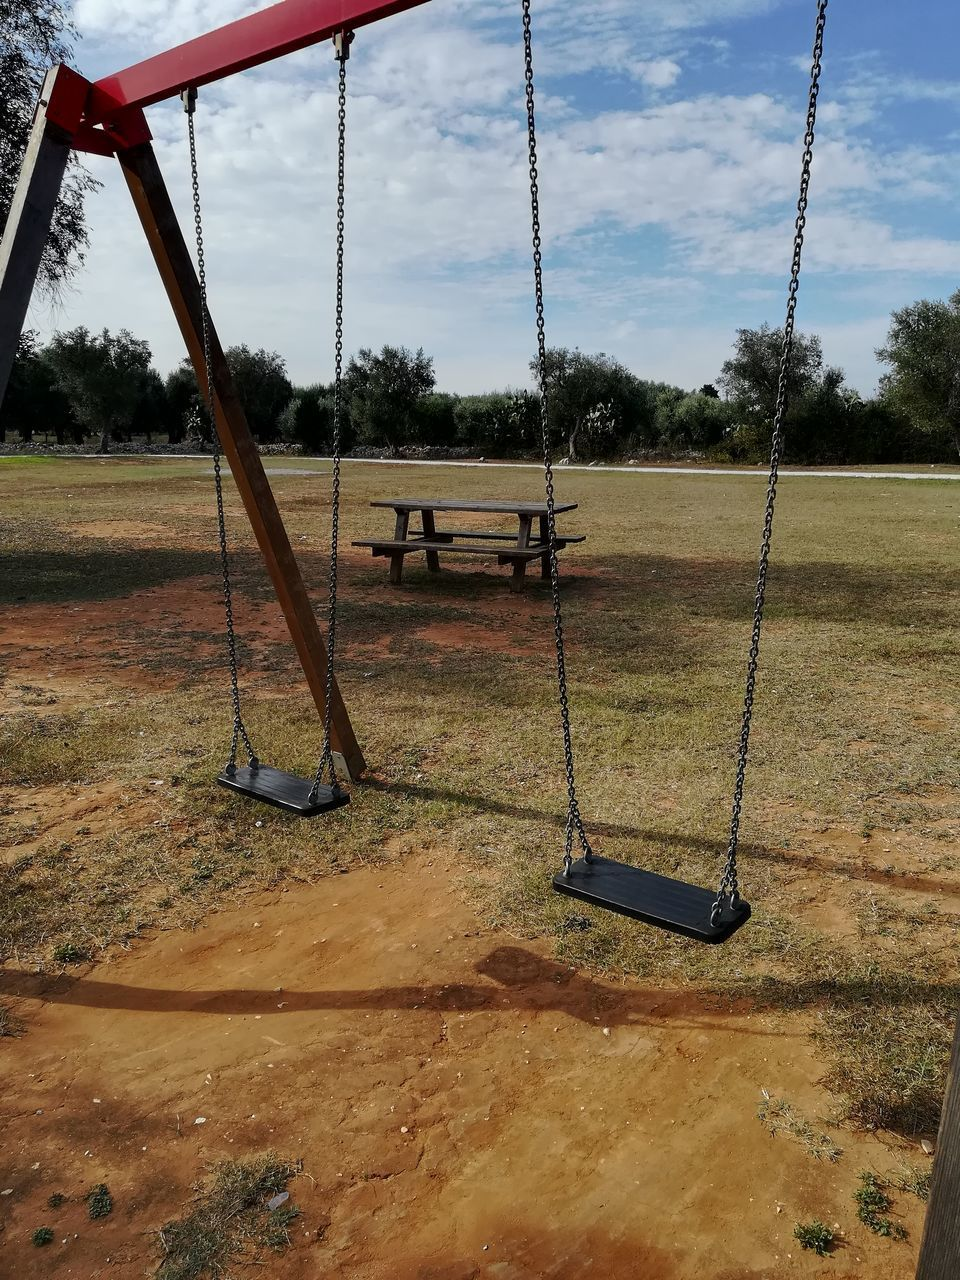 playground, swing, tree, plant, outdoor play equipment, nature, day, grass, empty, sky, cloud - sky, park, childhood, field, absence, park - man made space, land, hanging, outdoors, rope swing, jungle gym